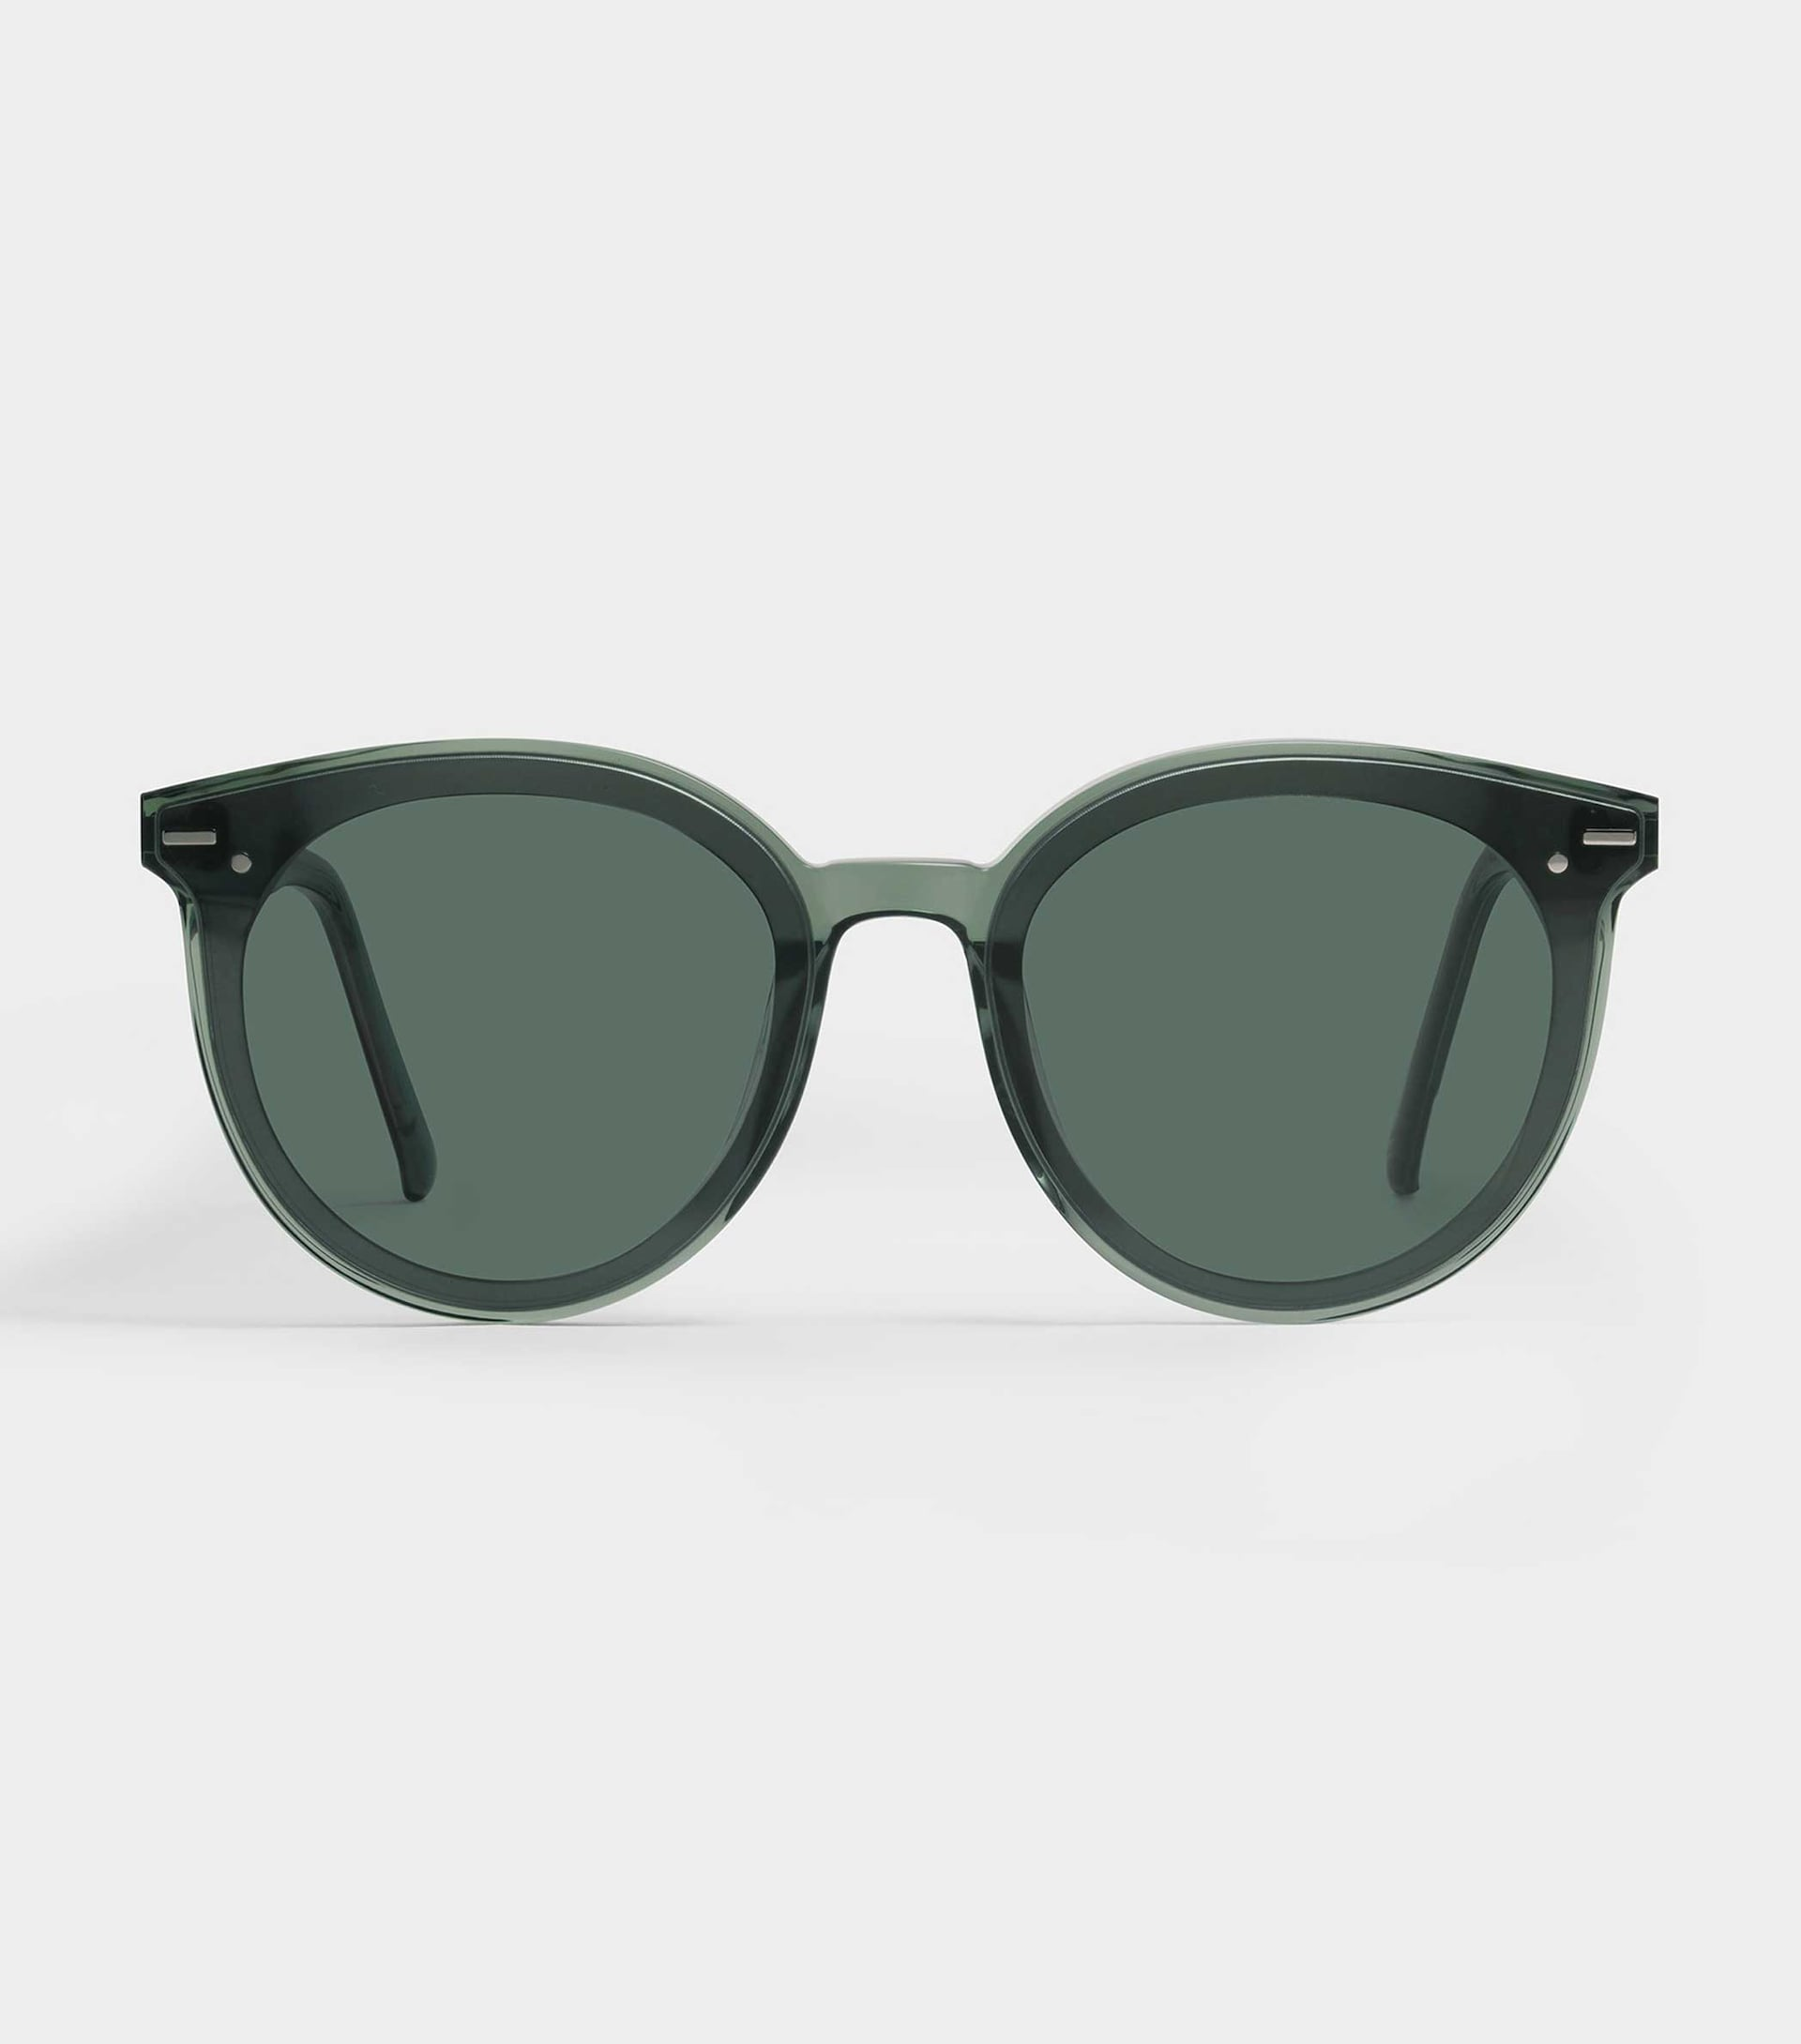 9184db40812f Flatba Designed oversized sunglasses. SHOP NOW · EAST MOON G3